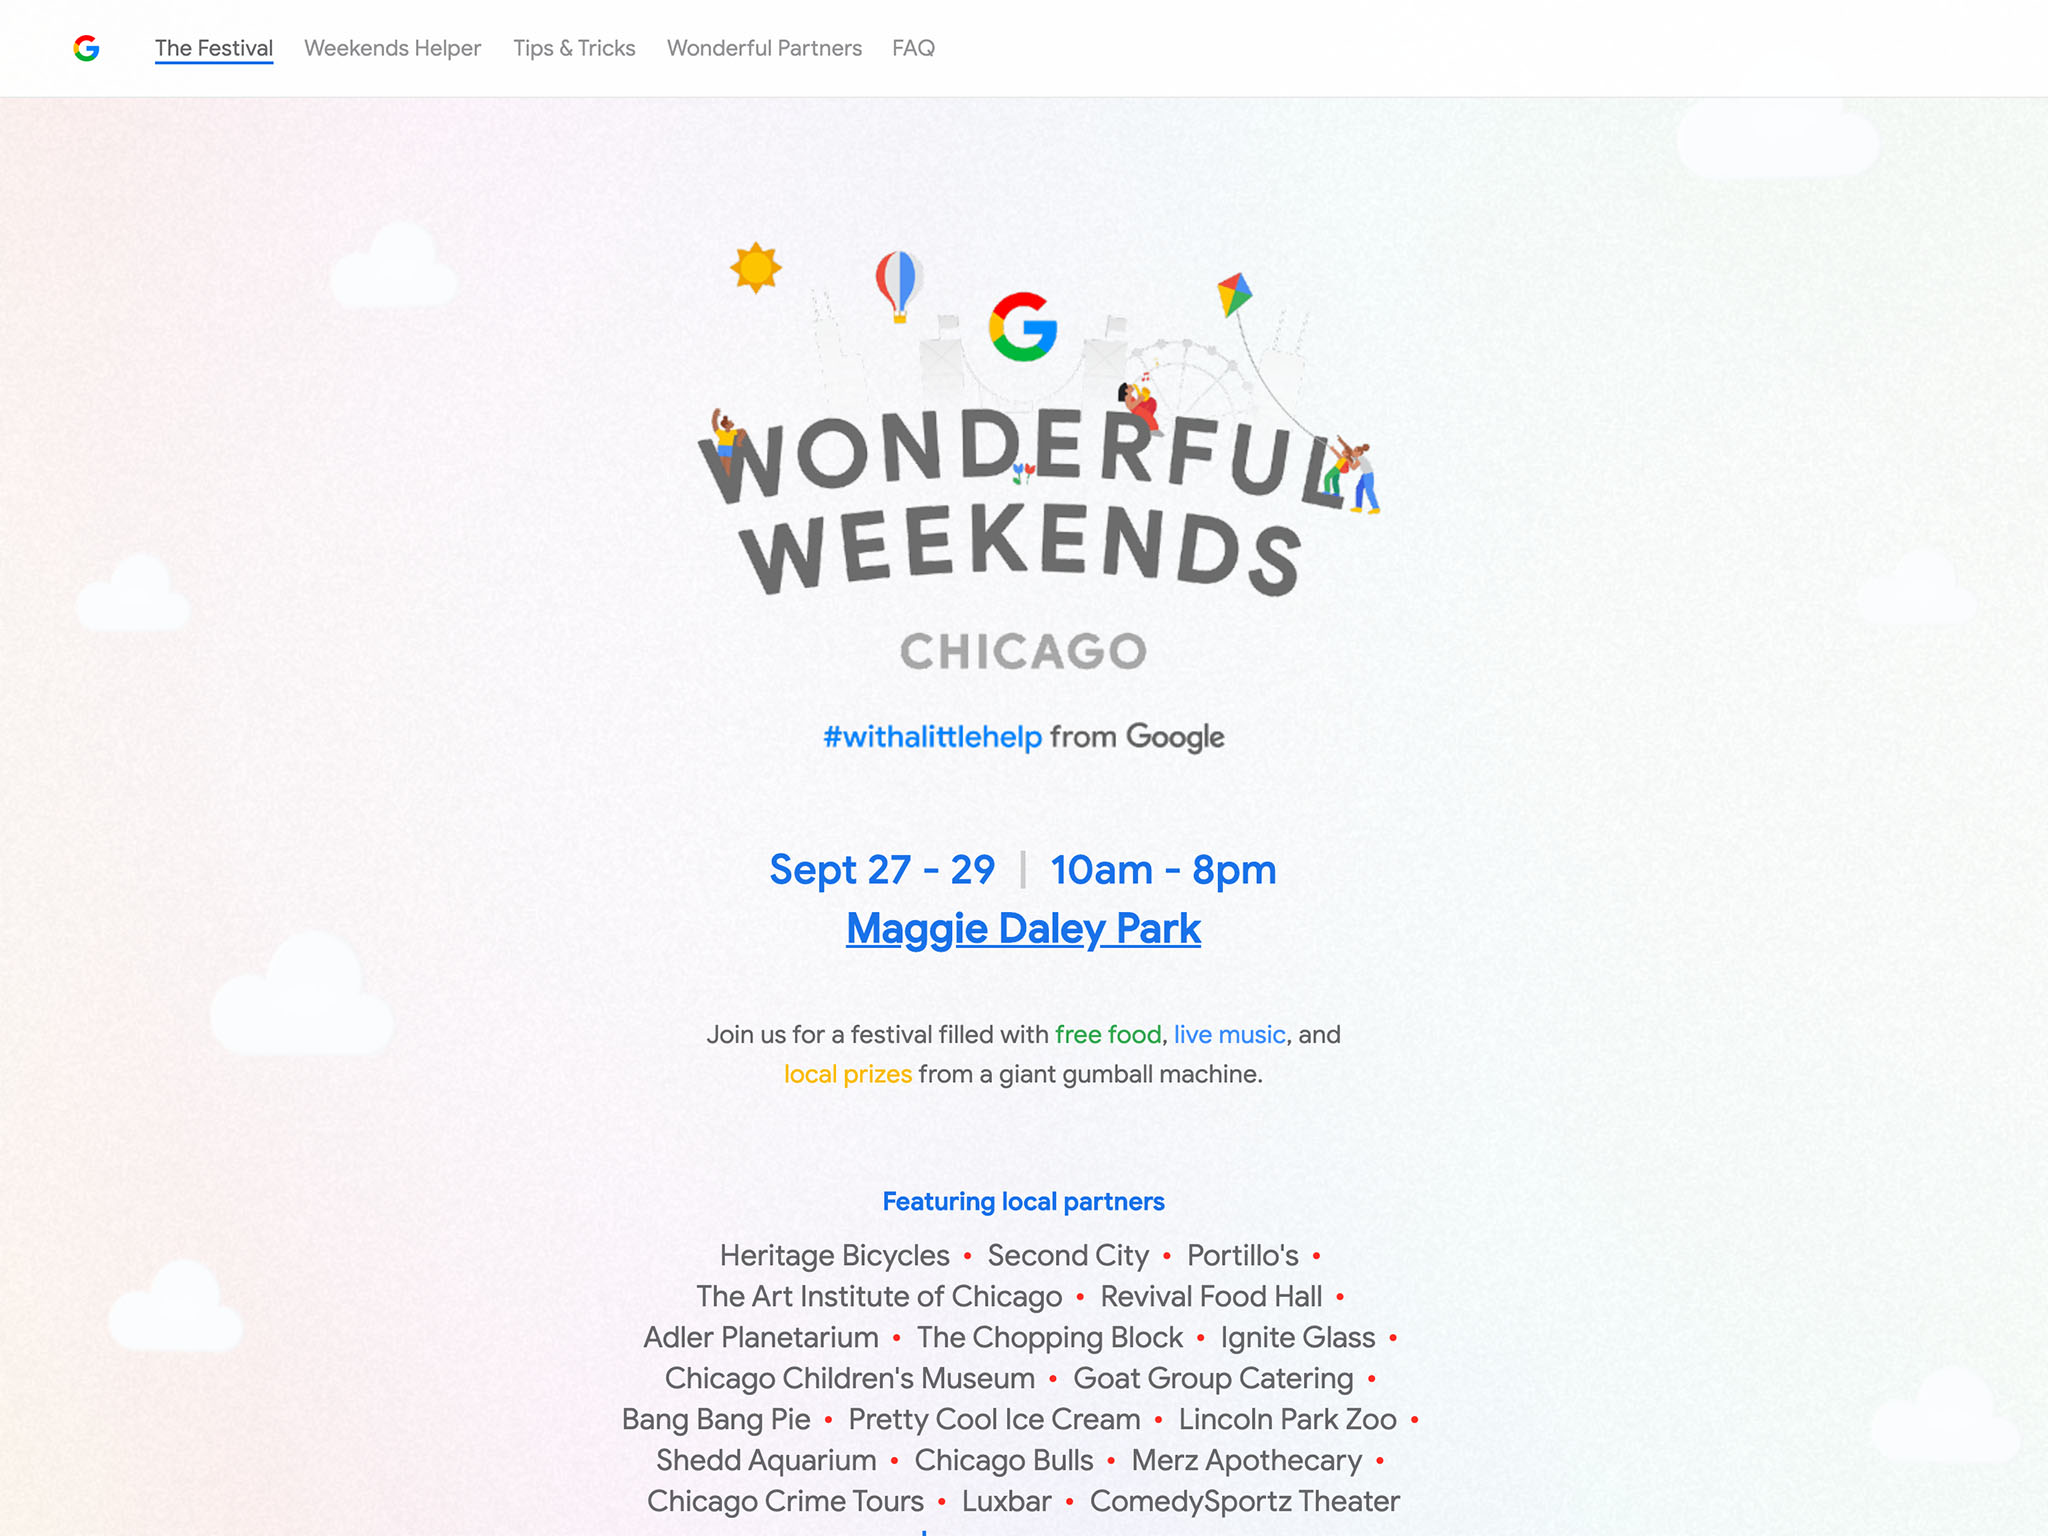 Wonderful Weekends | #withalittlehelp from Google